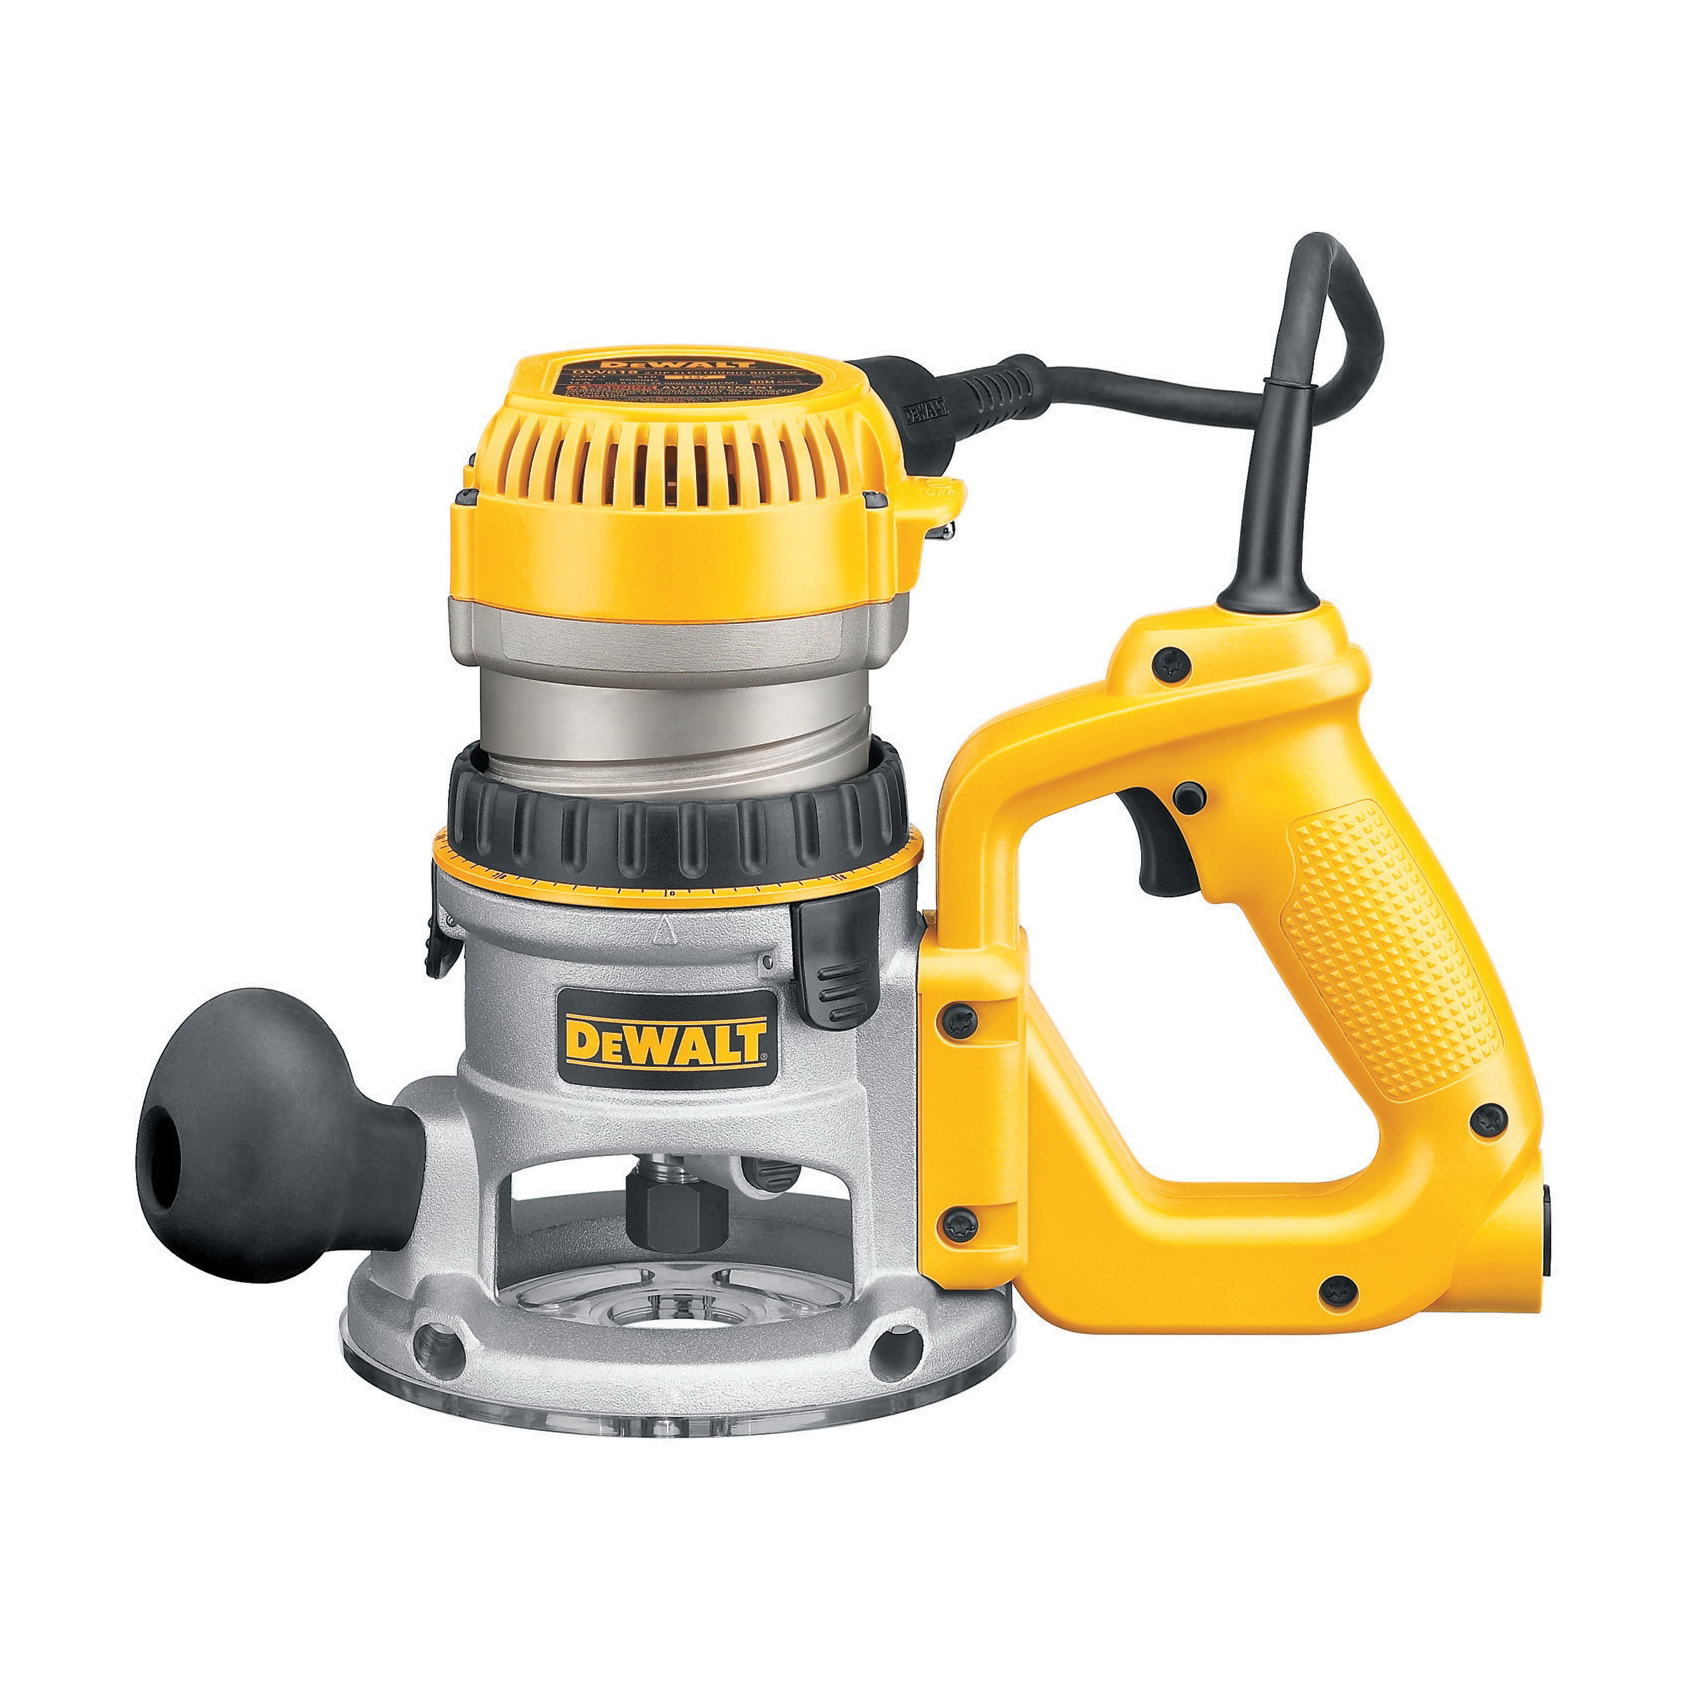 DeWALT® DW618D EVS Mid Size Soft Start D-Handle Router Kit, 1/4 in, 1/2 in Chuck, 8000 to 24000 rpm, 2.25 hp, 120 VAC, Toggle Switch